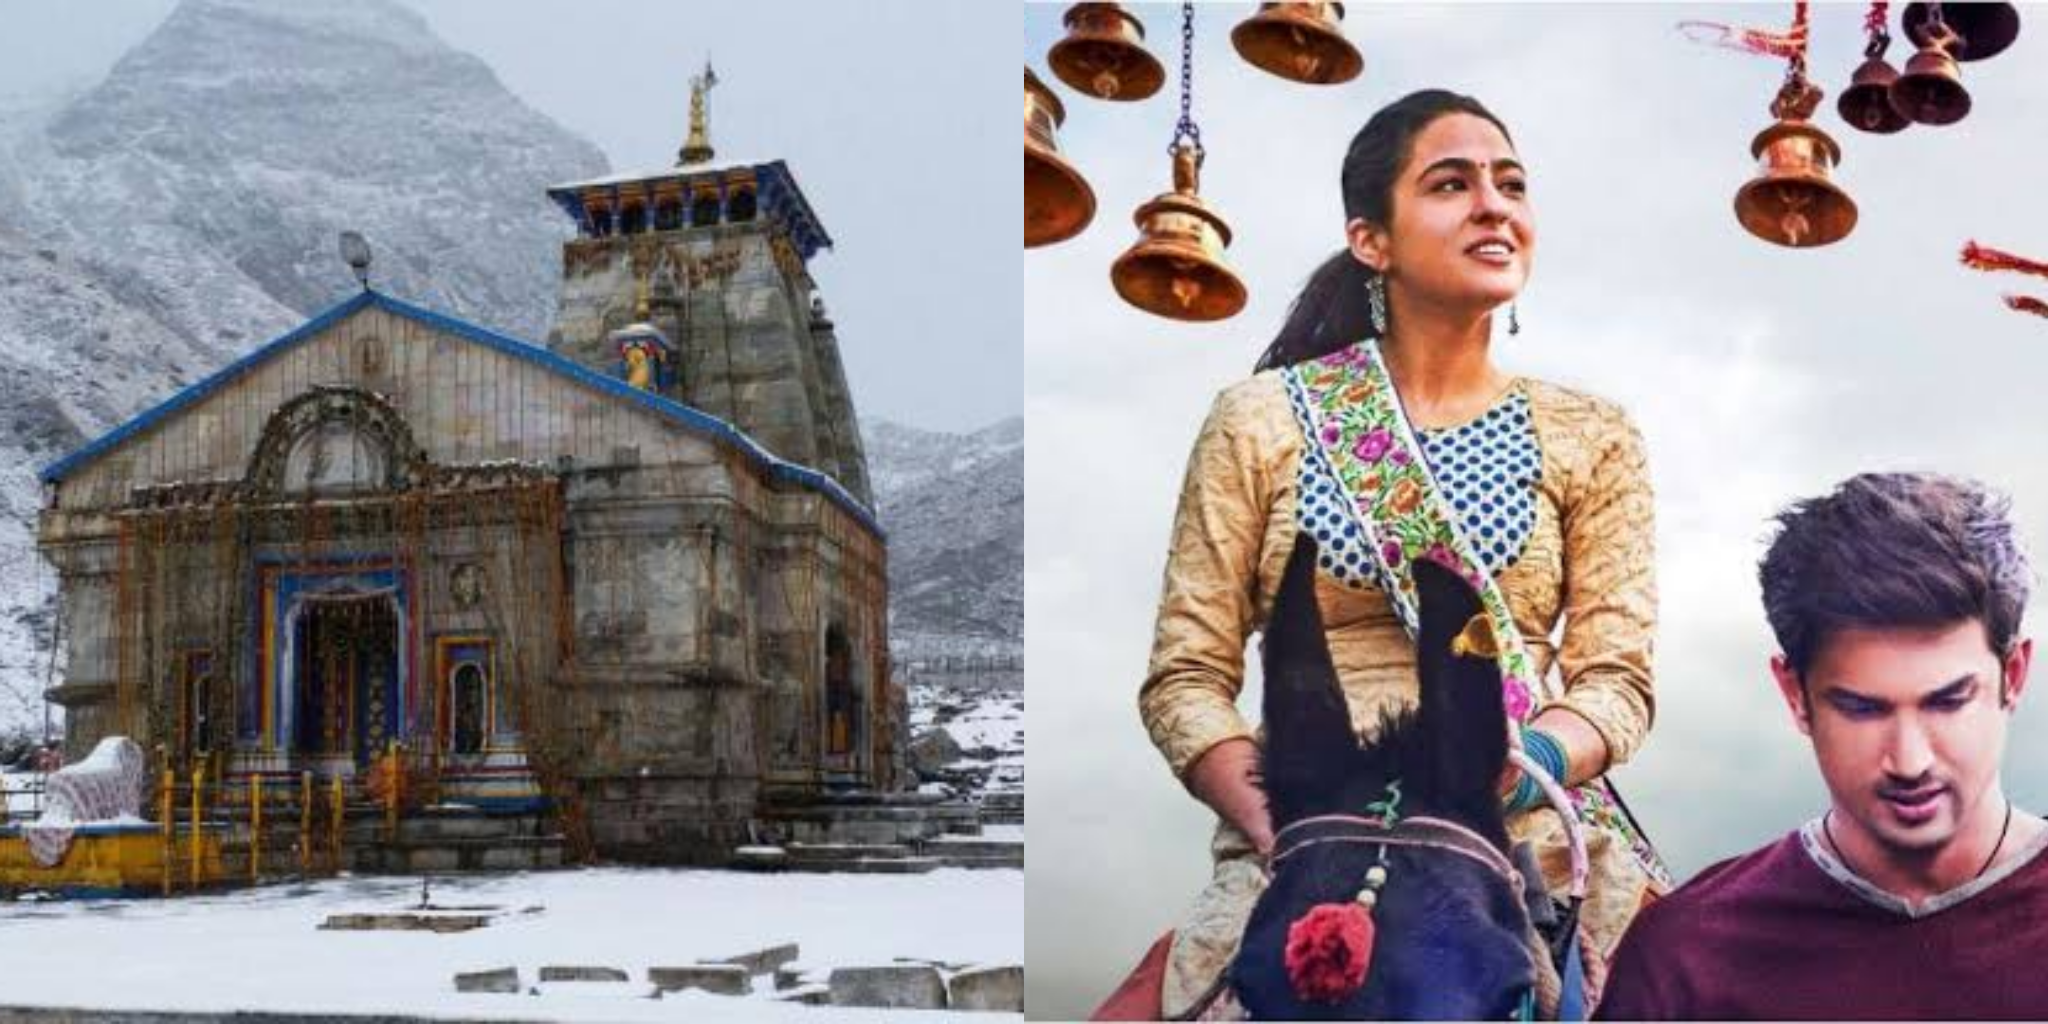 The story of Kedarnath which has been made into a 2018 film 'Kedarnath'